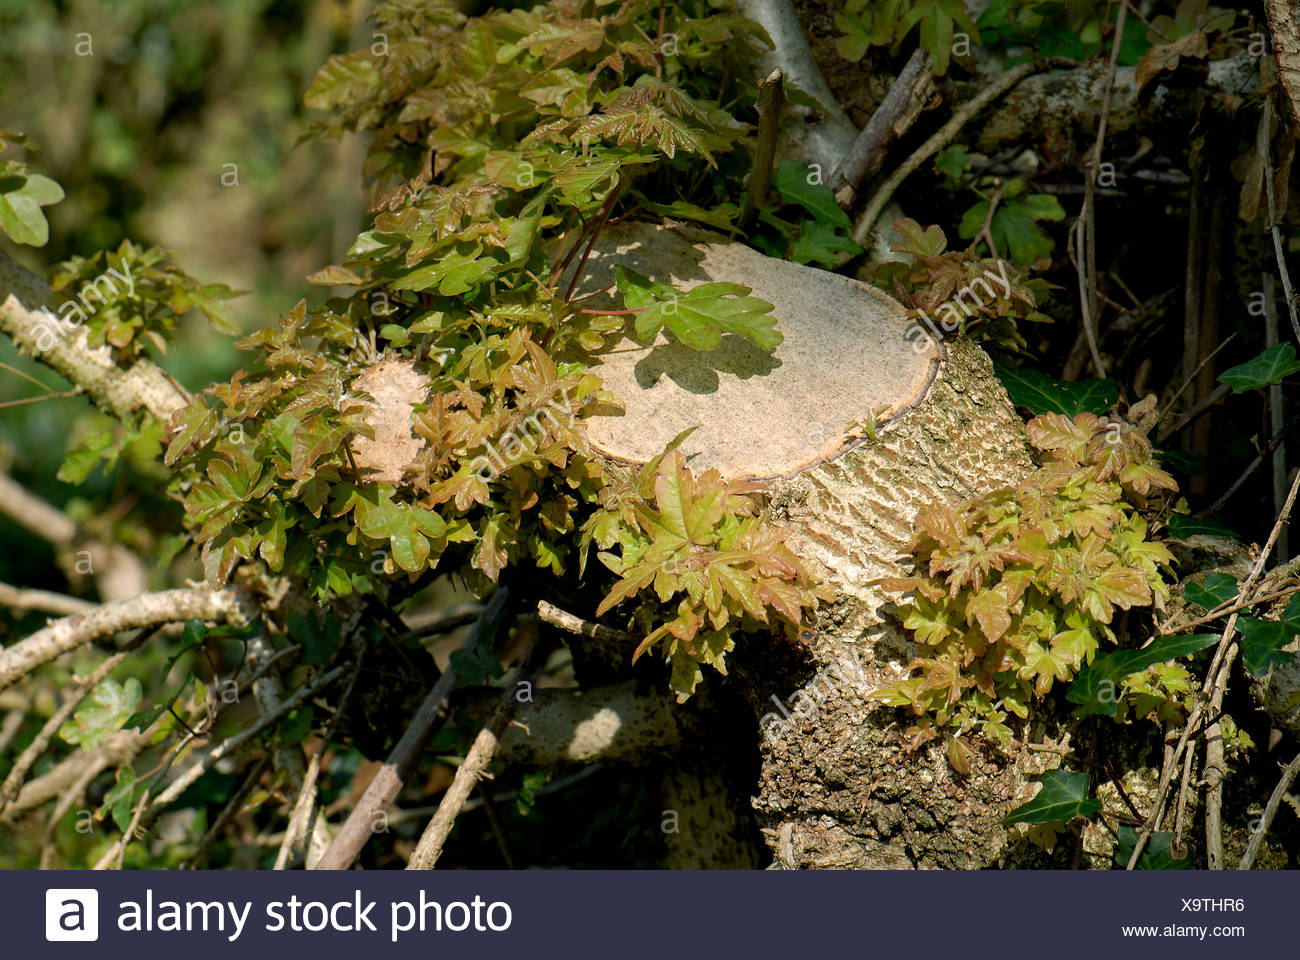 Foliage regrowing from the stump of a field maple Acer campestre hedge tree - Stock Image